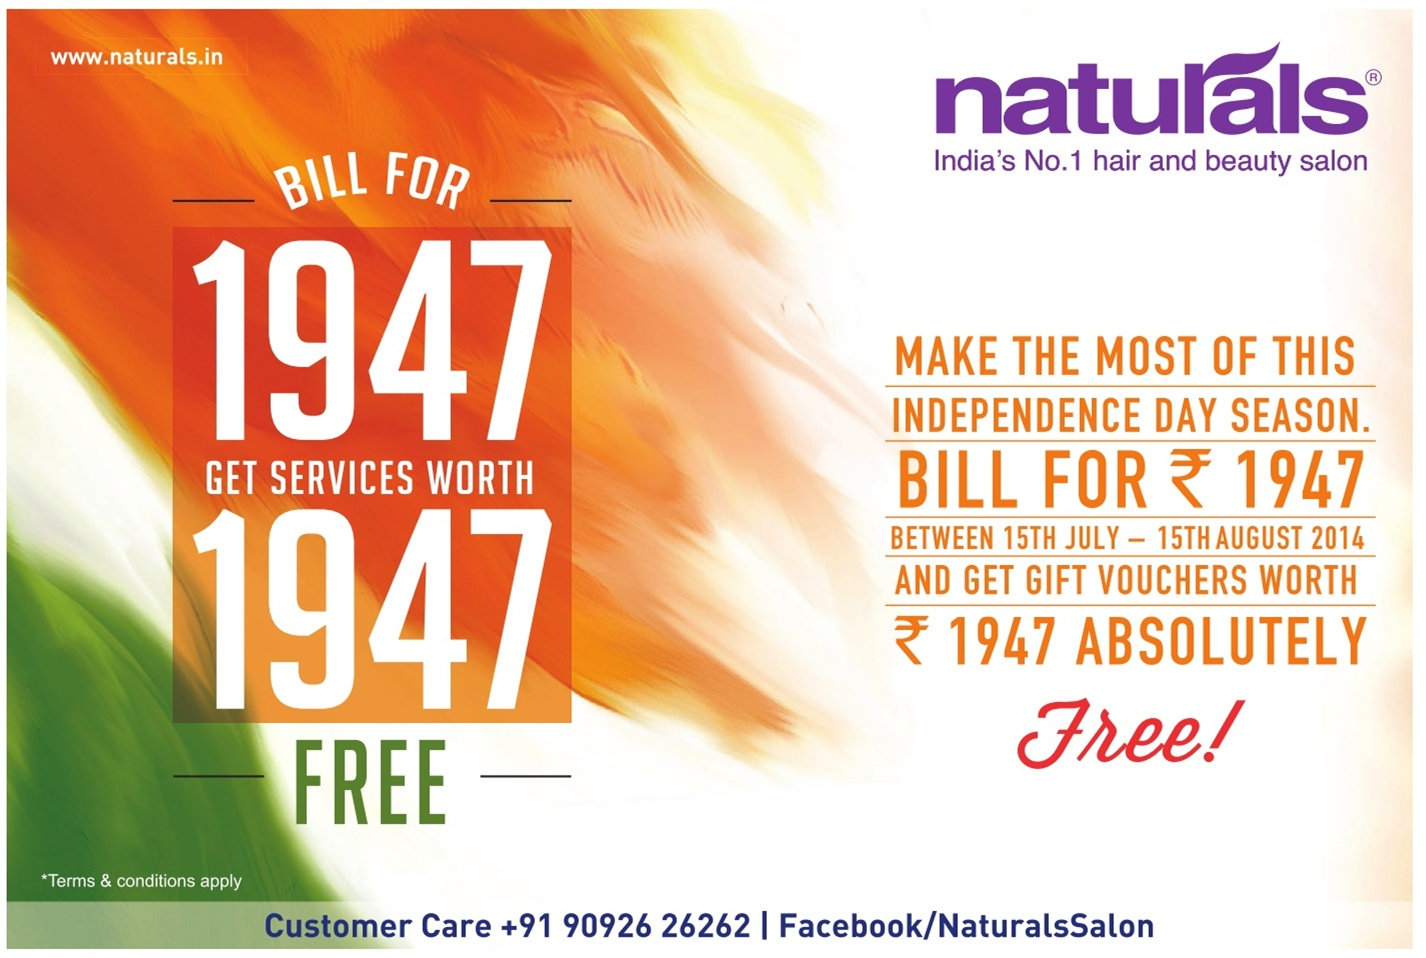 1947 Promotion from Naturals